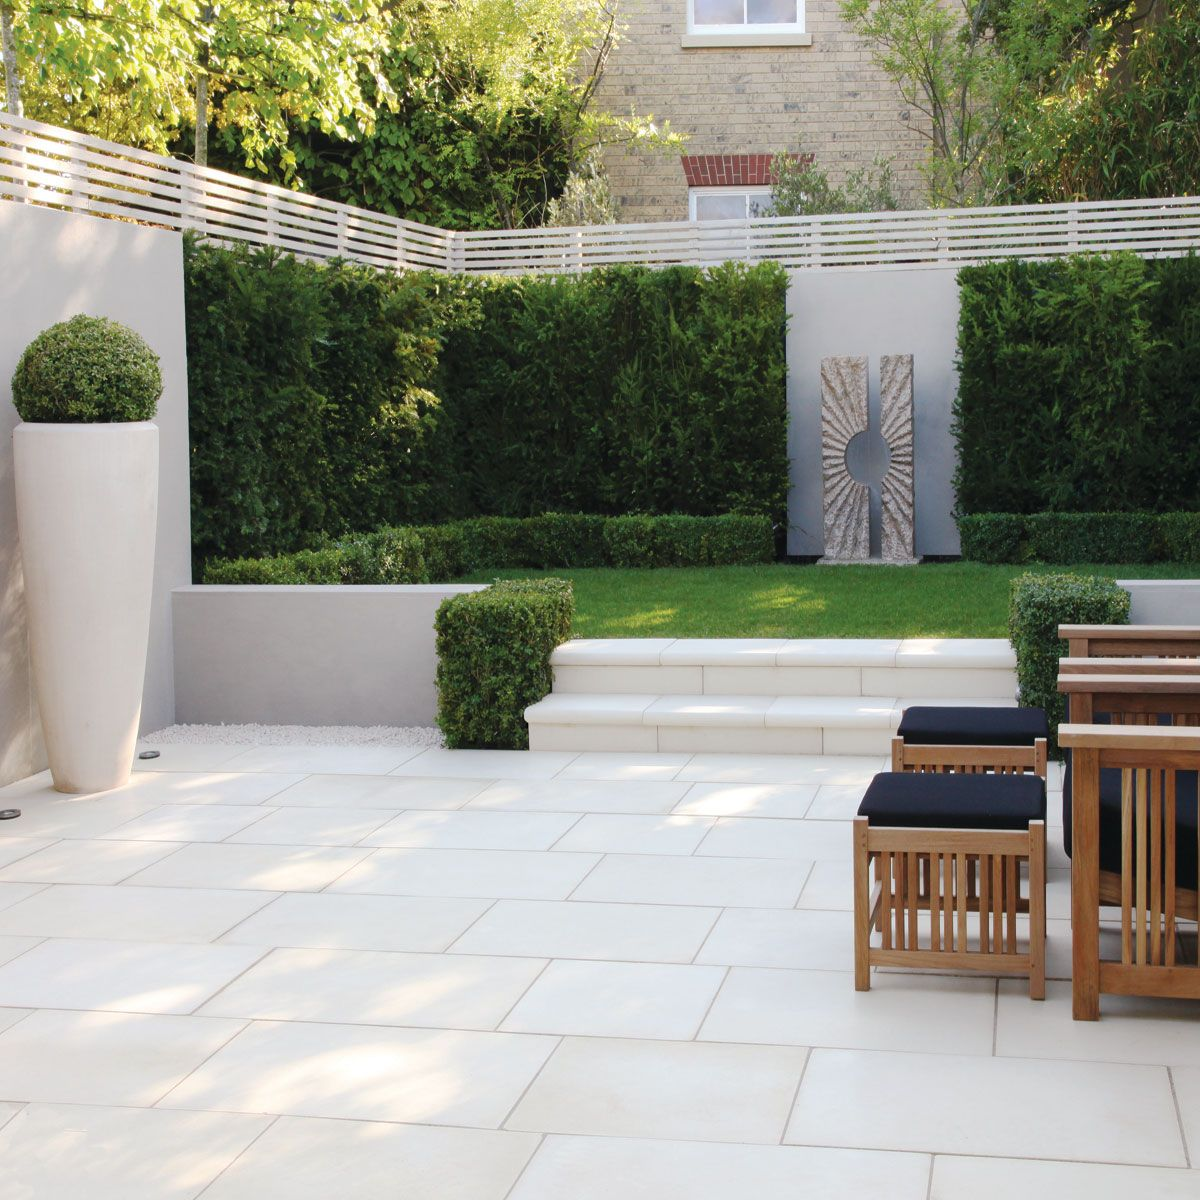 garden patio like the little hedges by the steps u2026 pinteres u2026